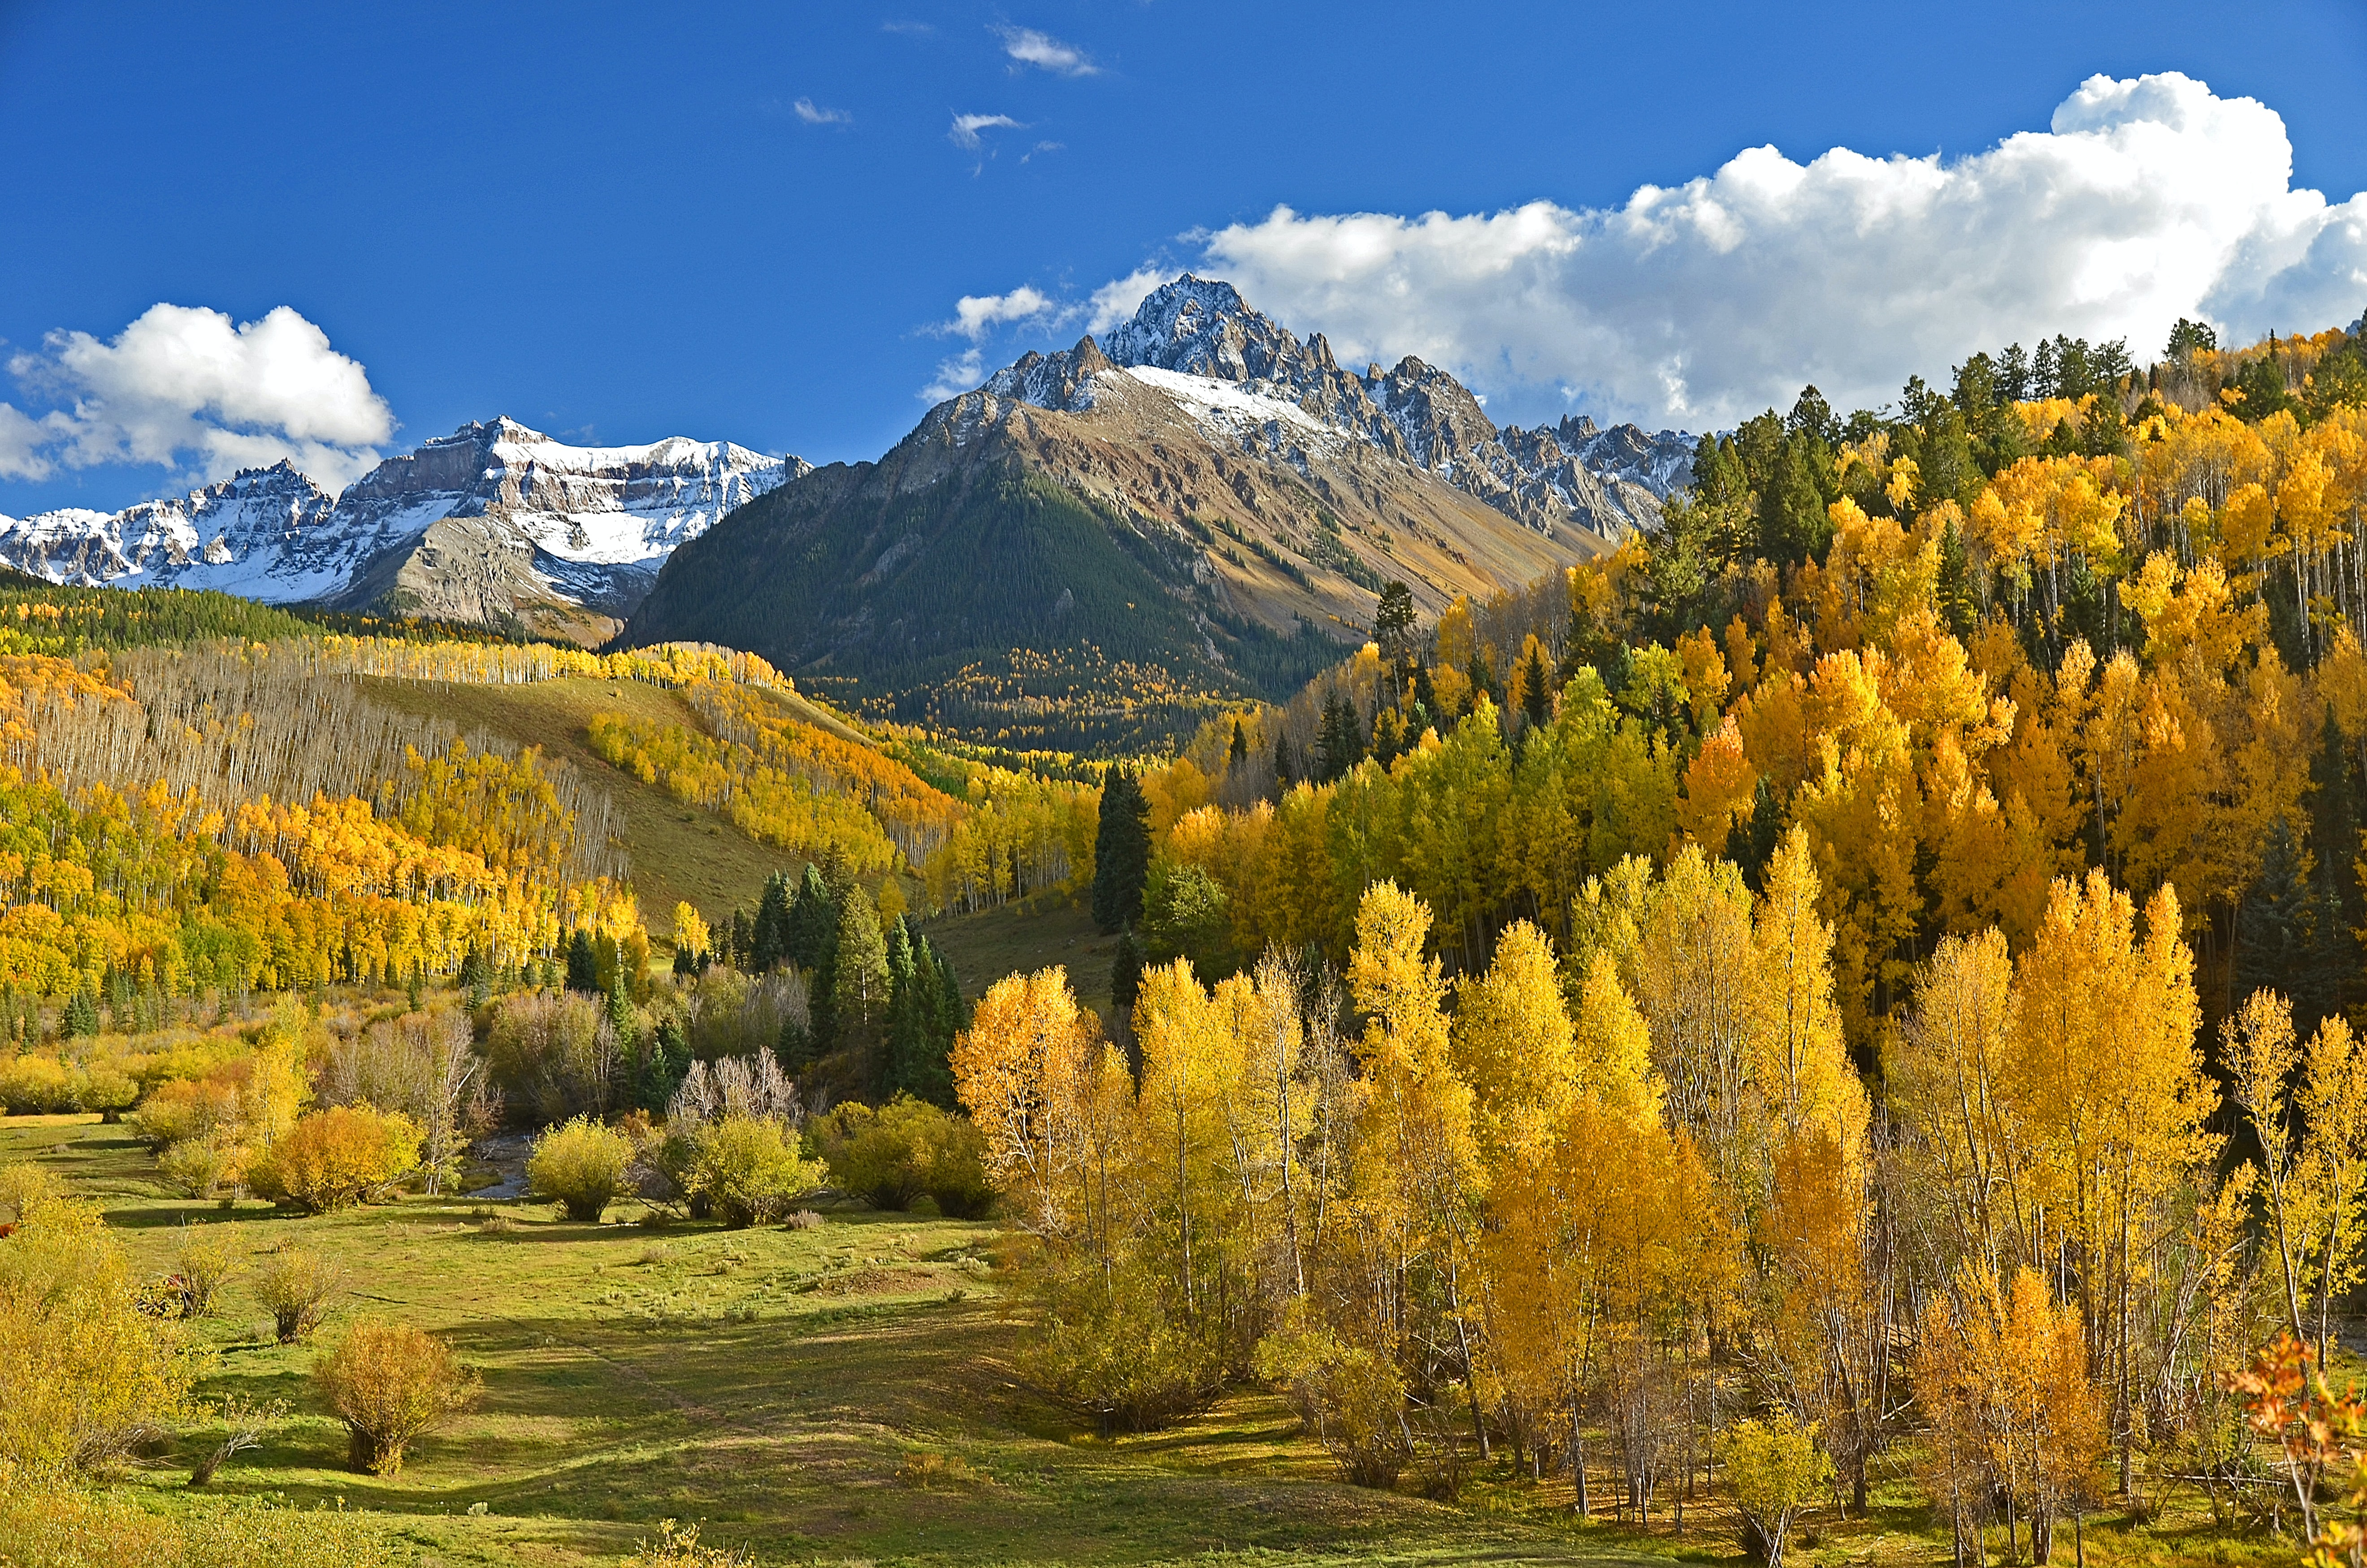 Scenic yellow and orange trees in a hilled forest near mountains.